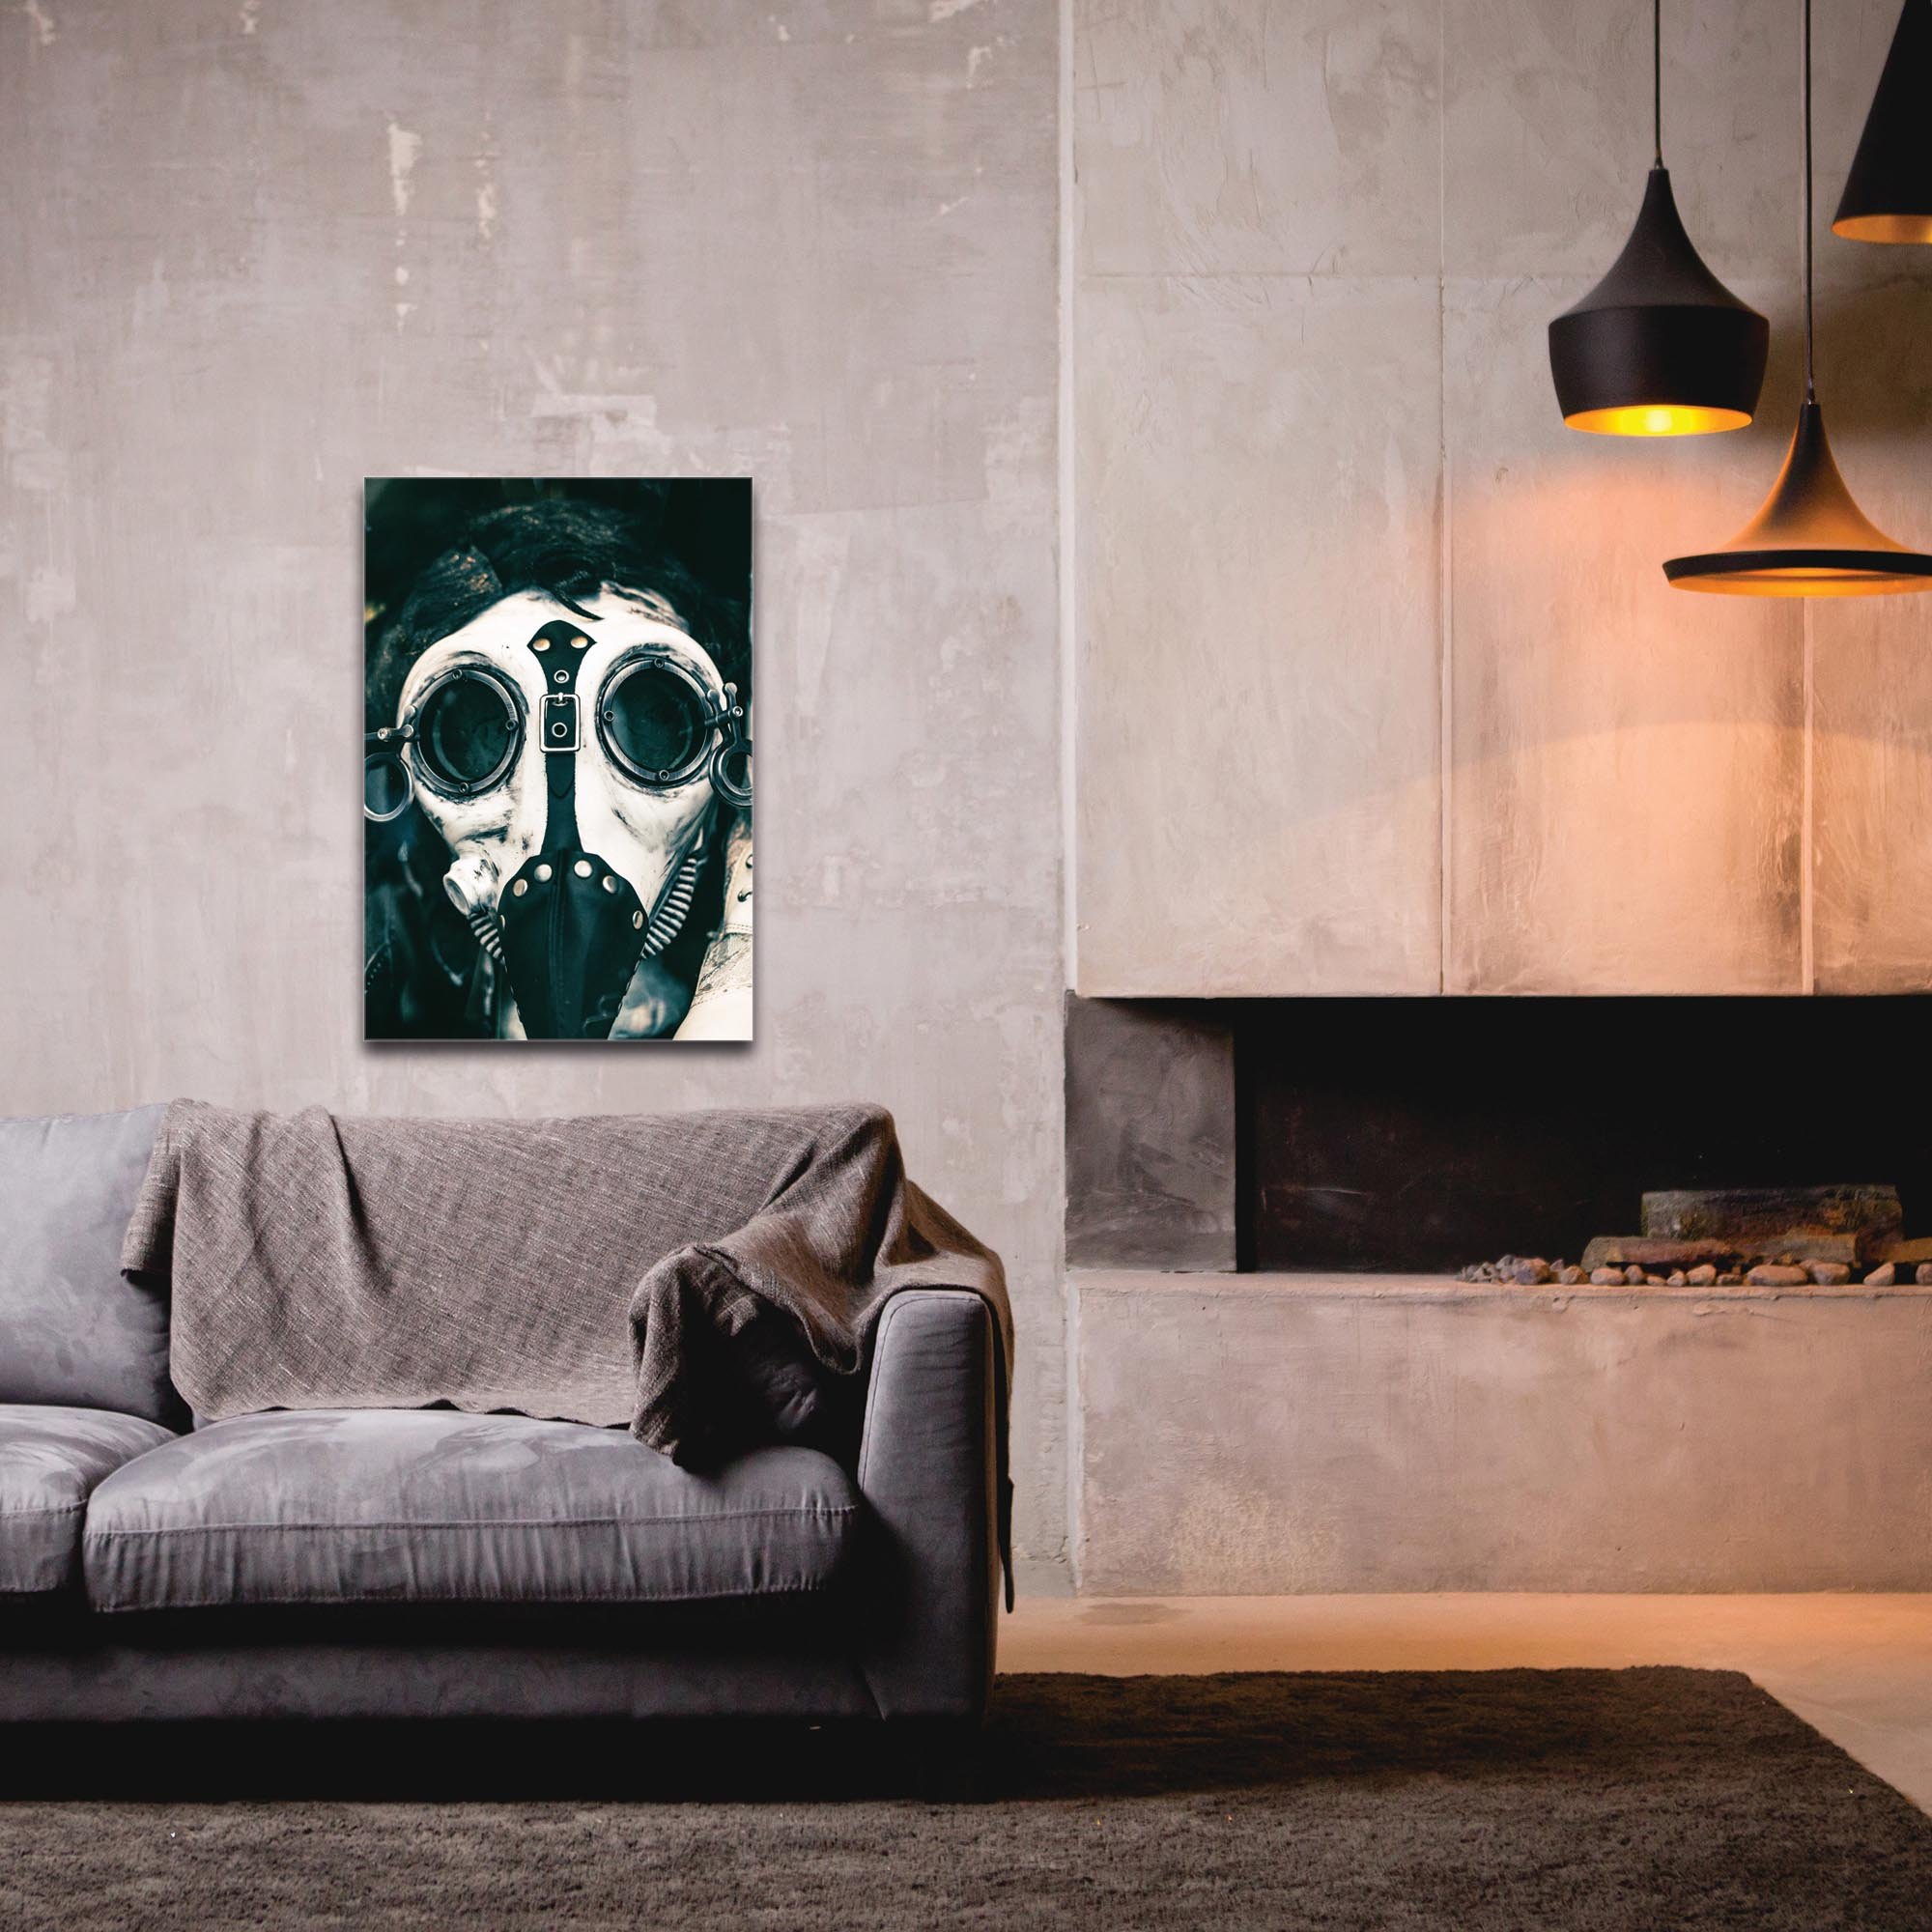 Eclectic Wall Art 'The Mask' - New Orleans Decor on Metal or Plexiglass - Image 3